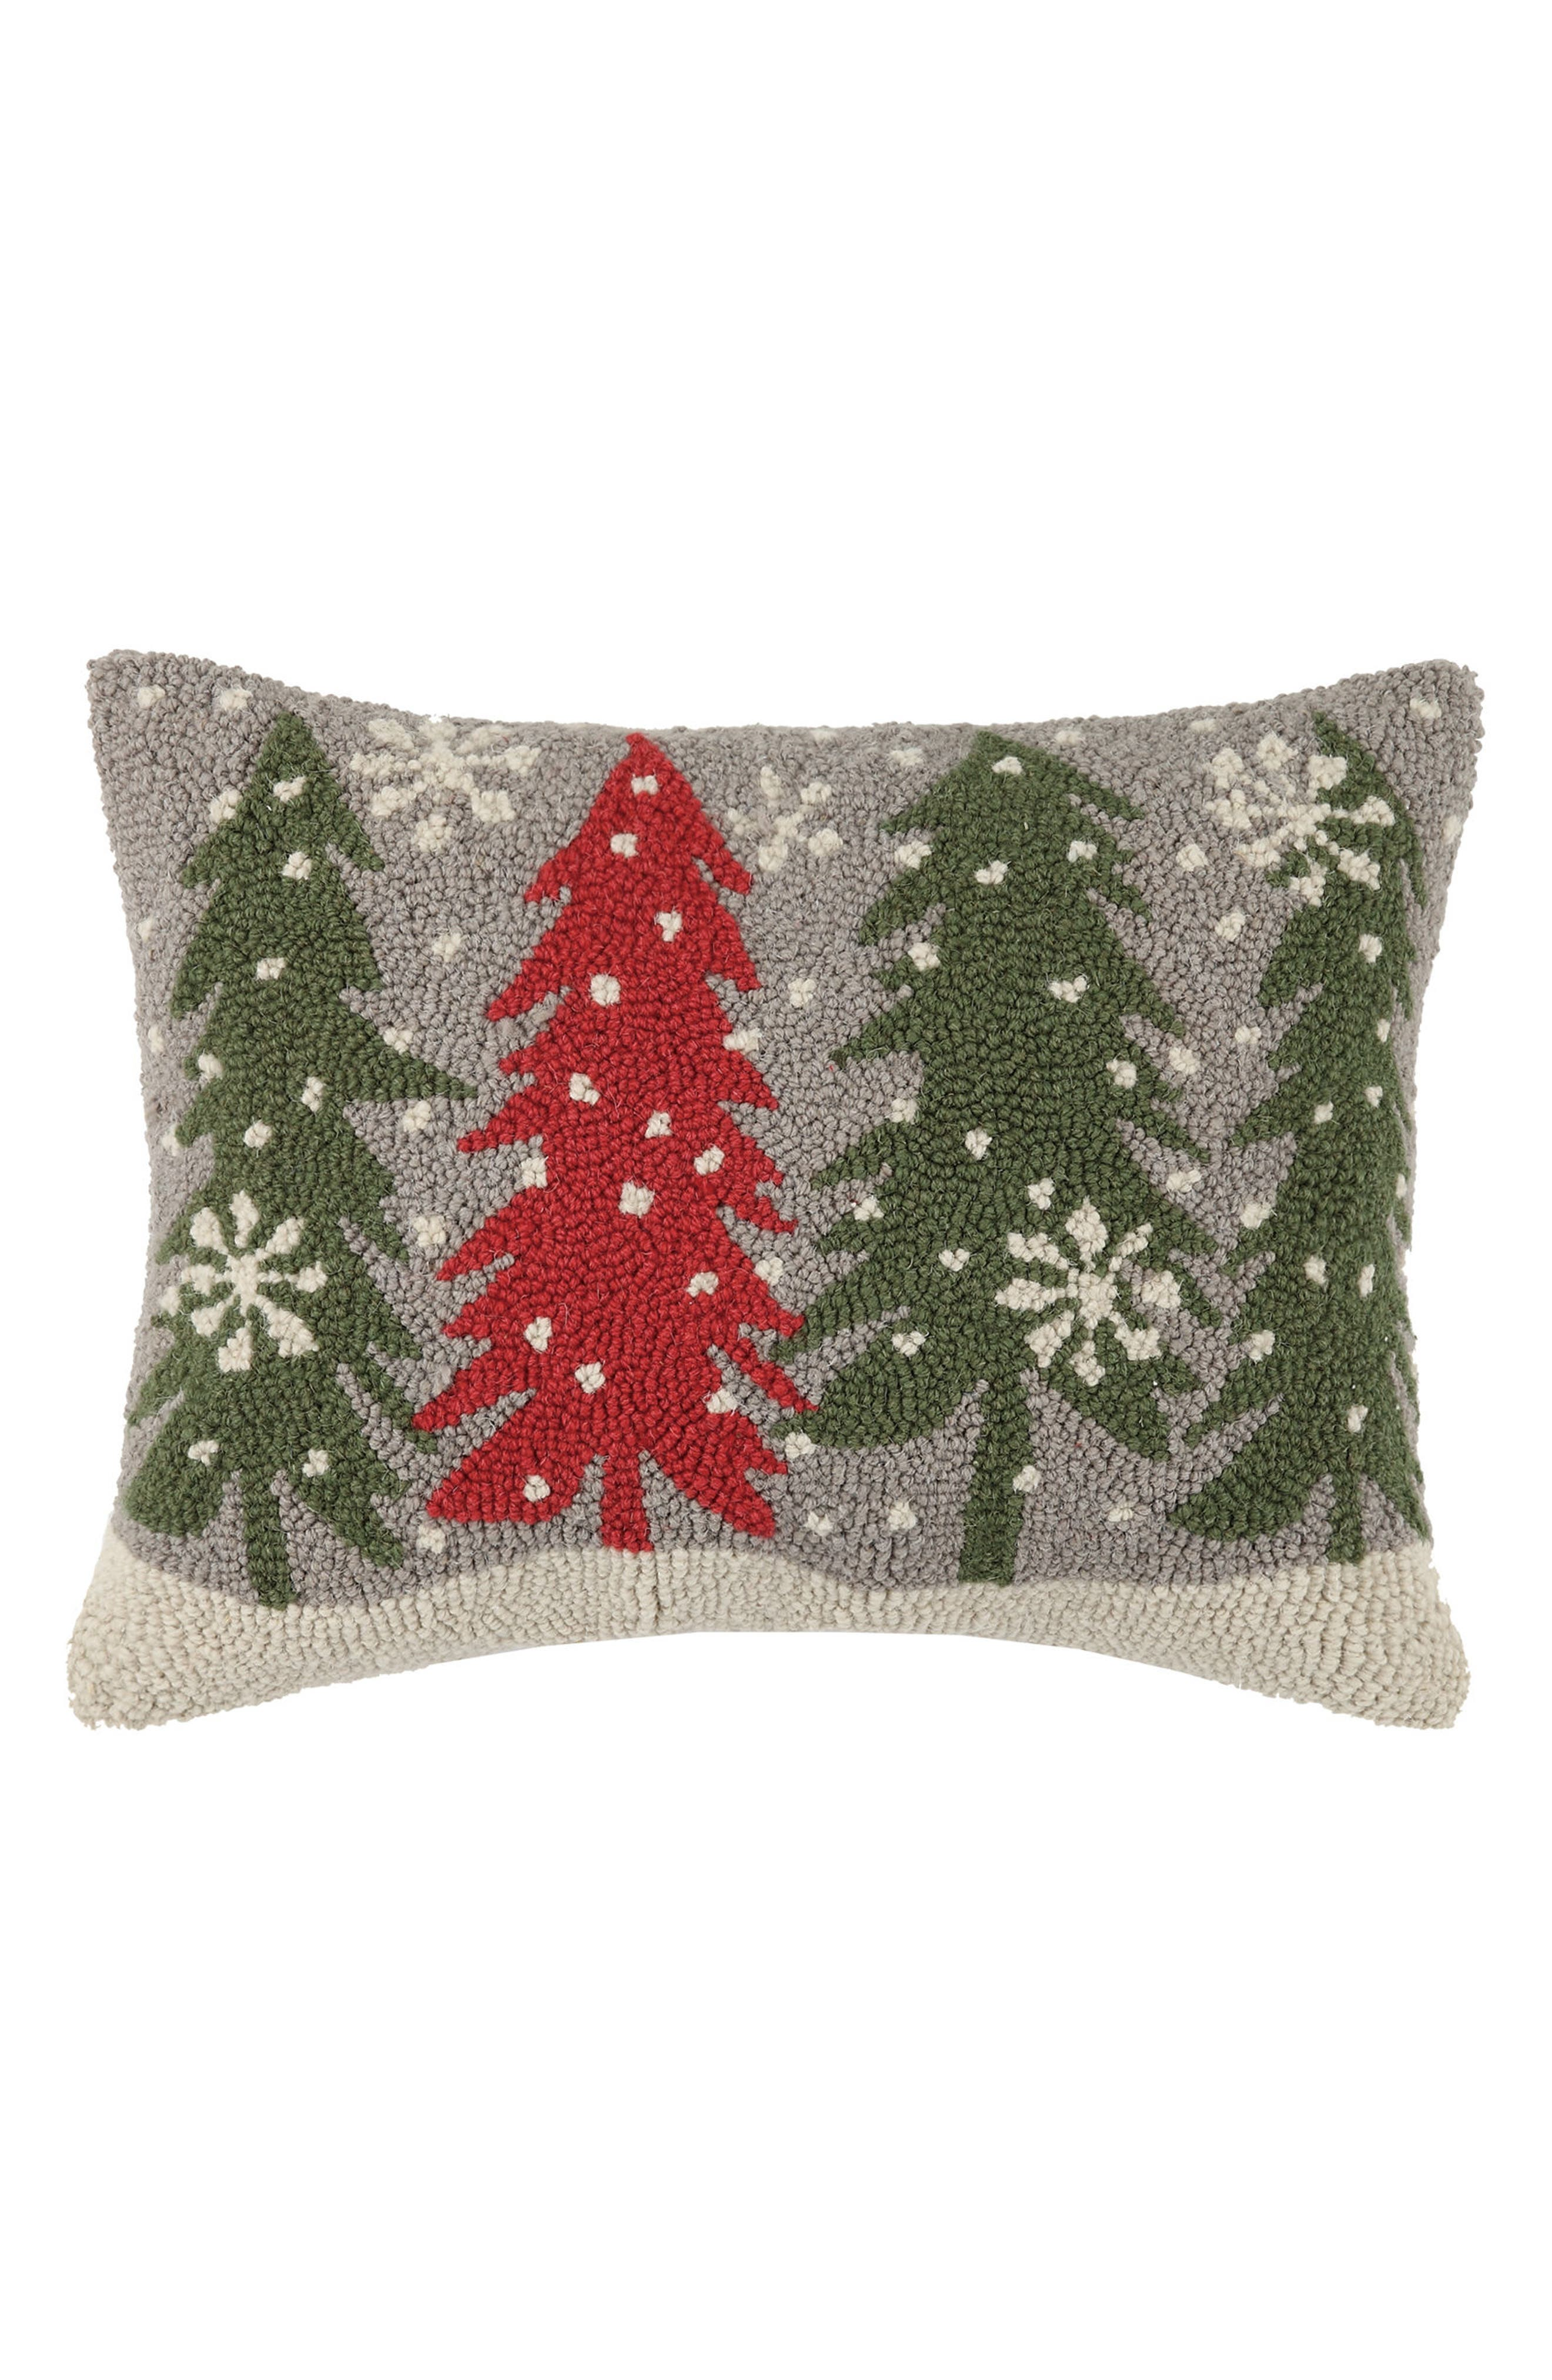 Trees with Snowflakes Hooked Accent Pillow,                         Main,                         color, 020